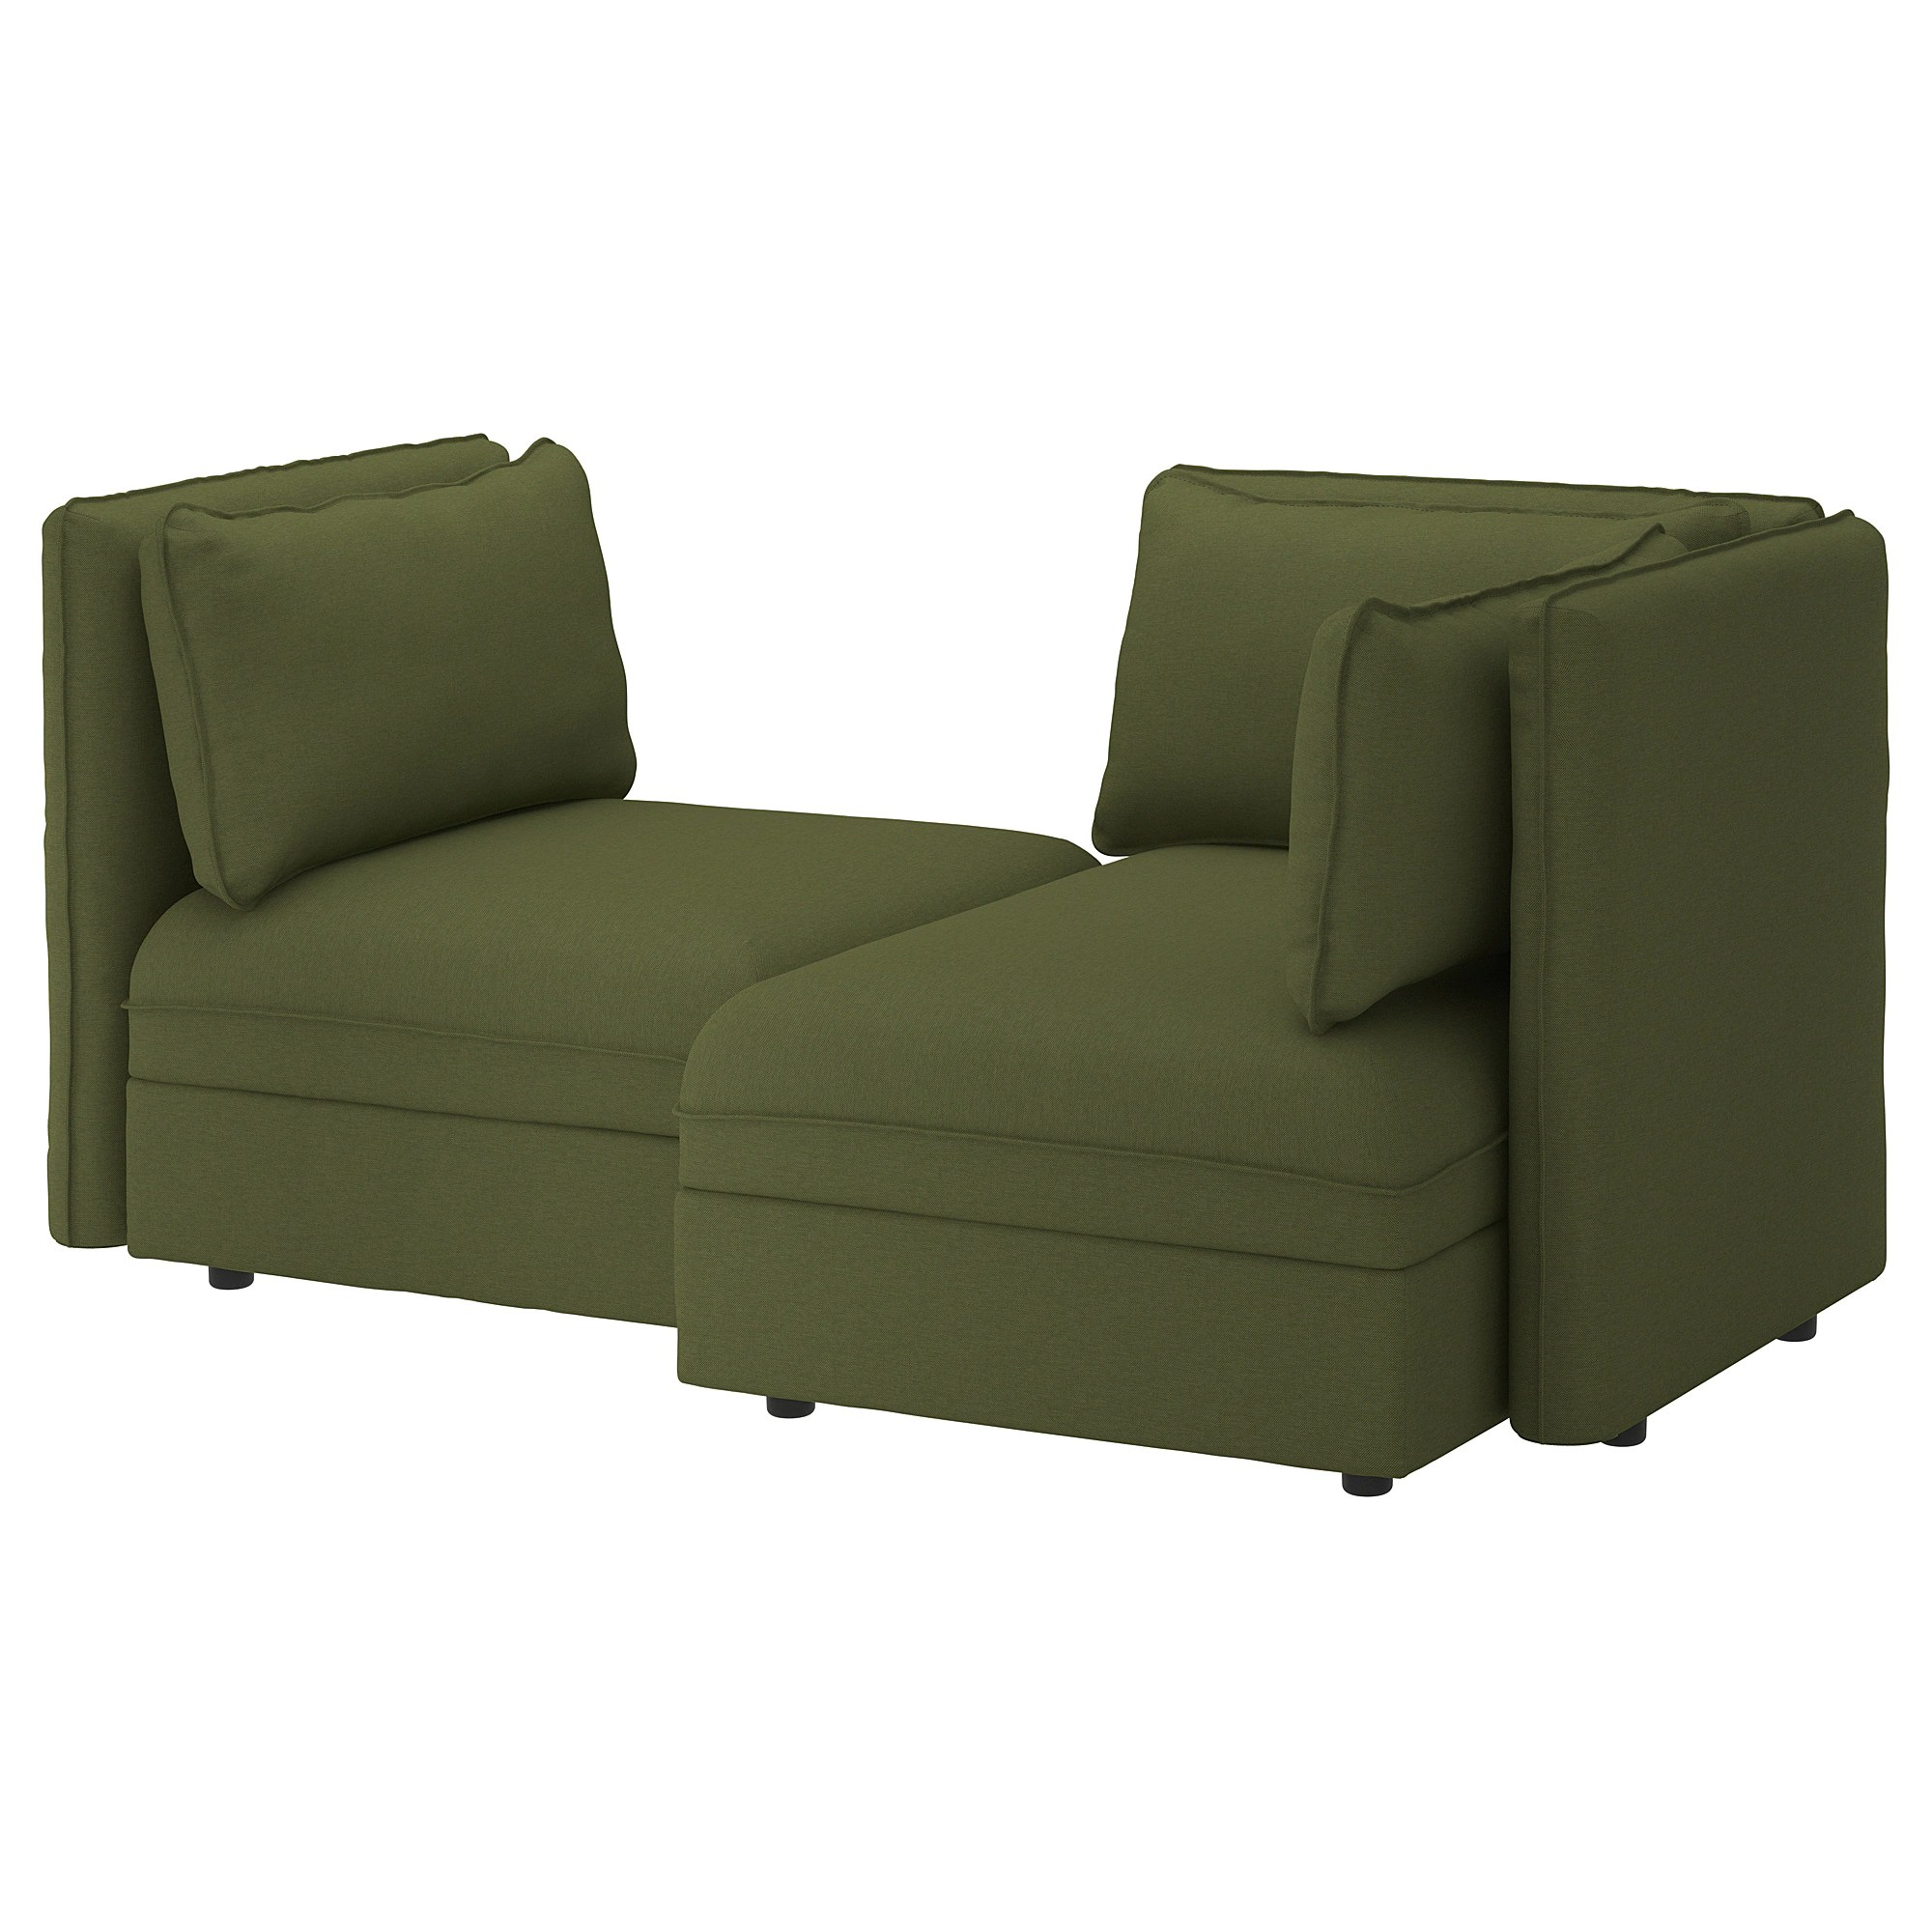 Vallentuna 2 Seat Sofa Bed Modular Sofa With Storage Vallentuna 2 Seat Modular Sofa